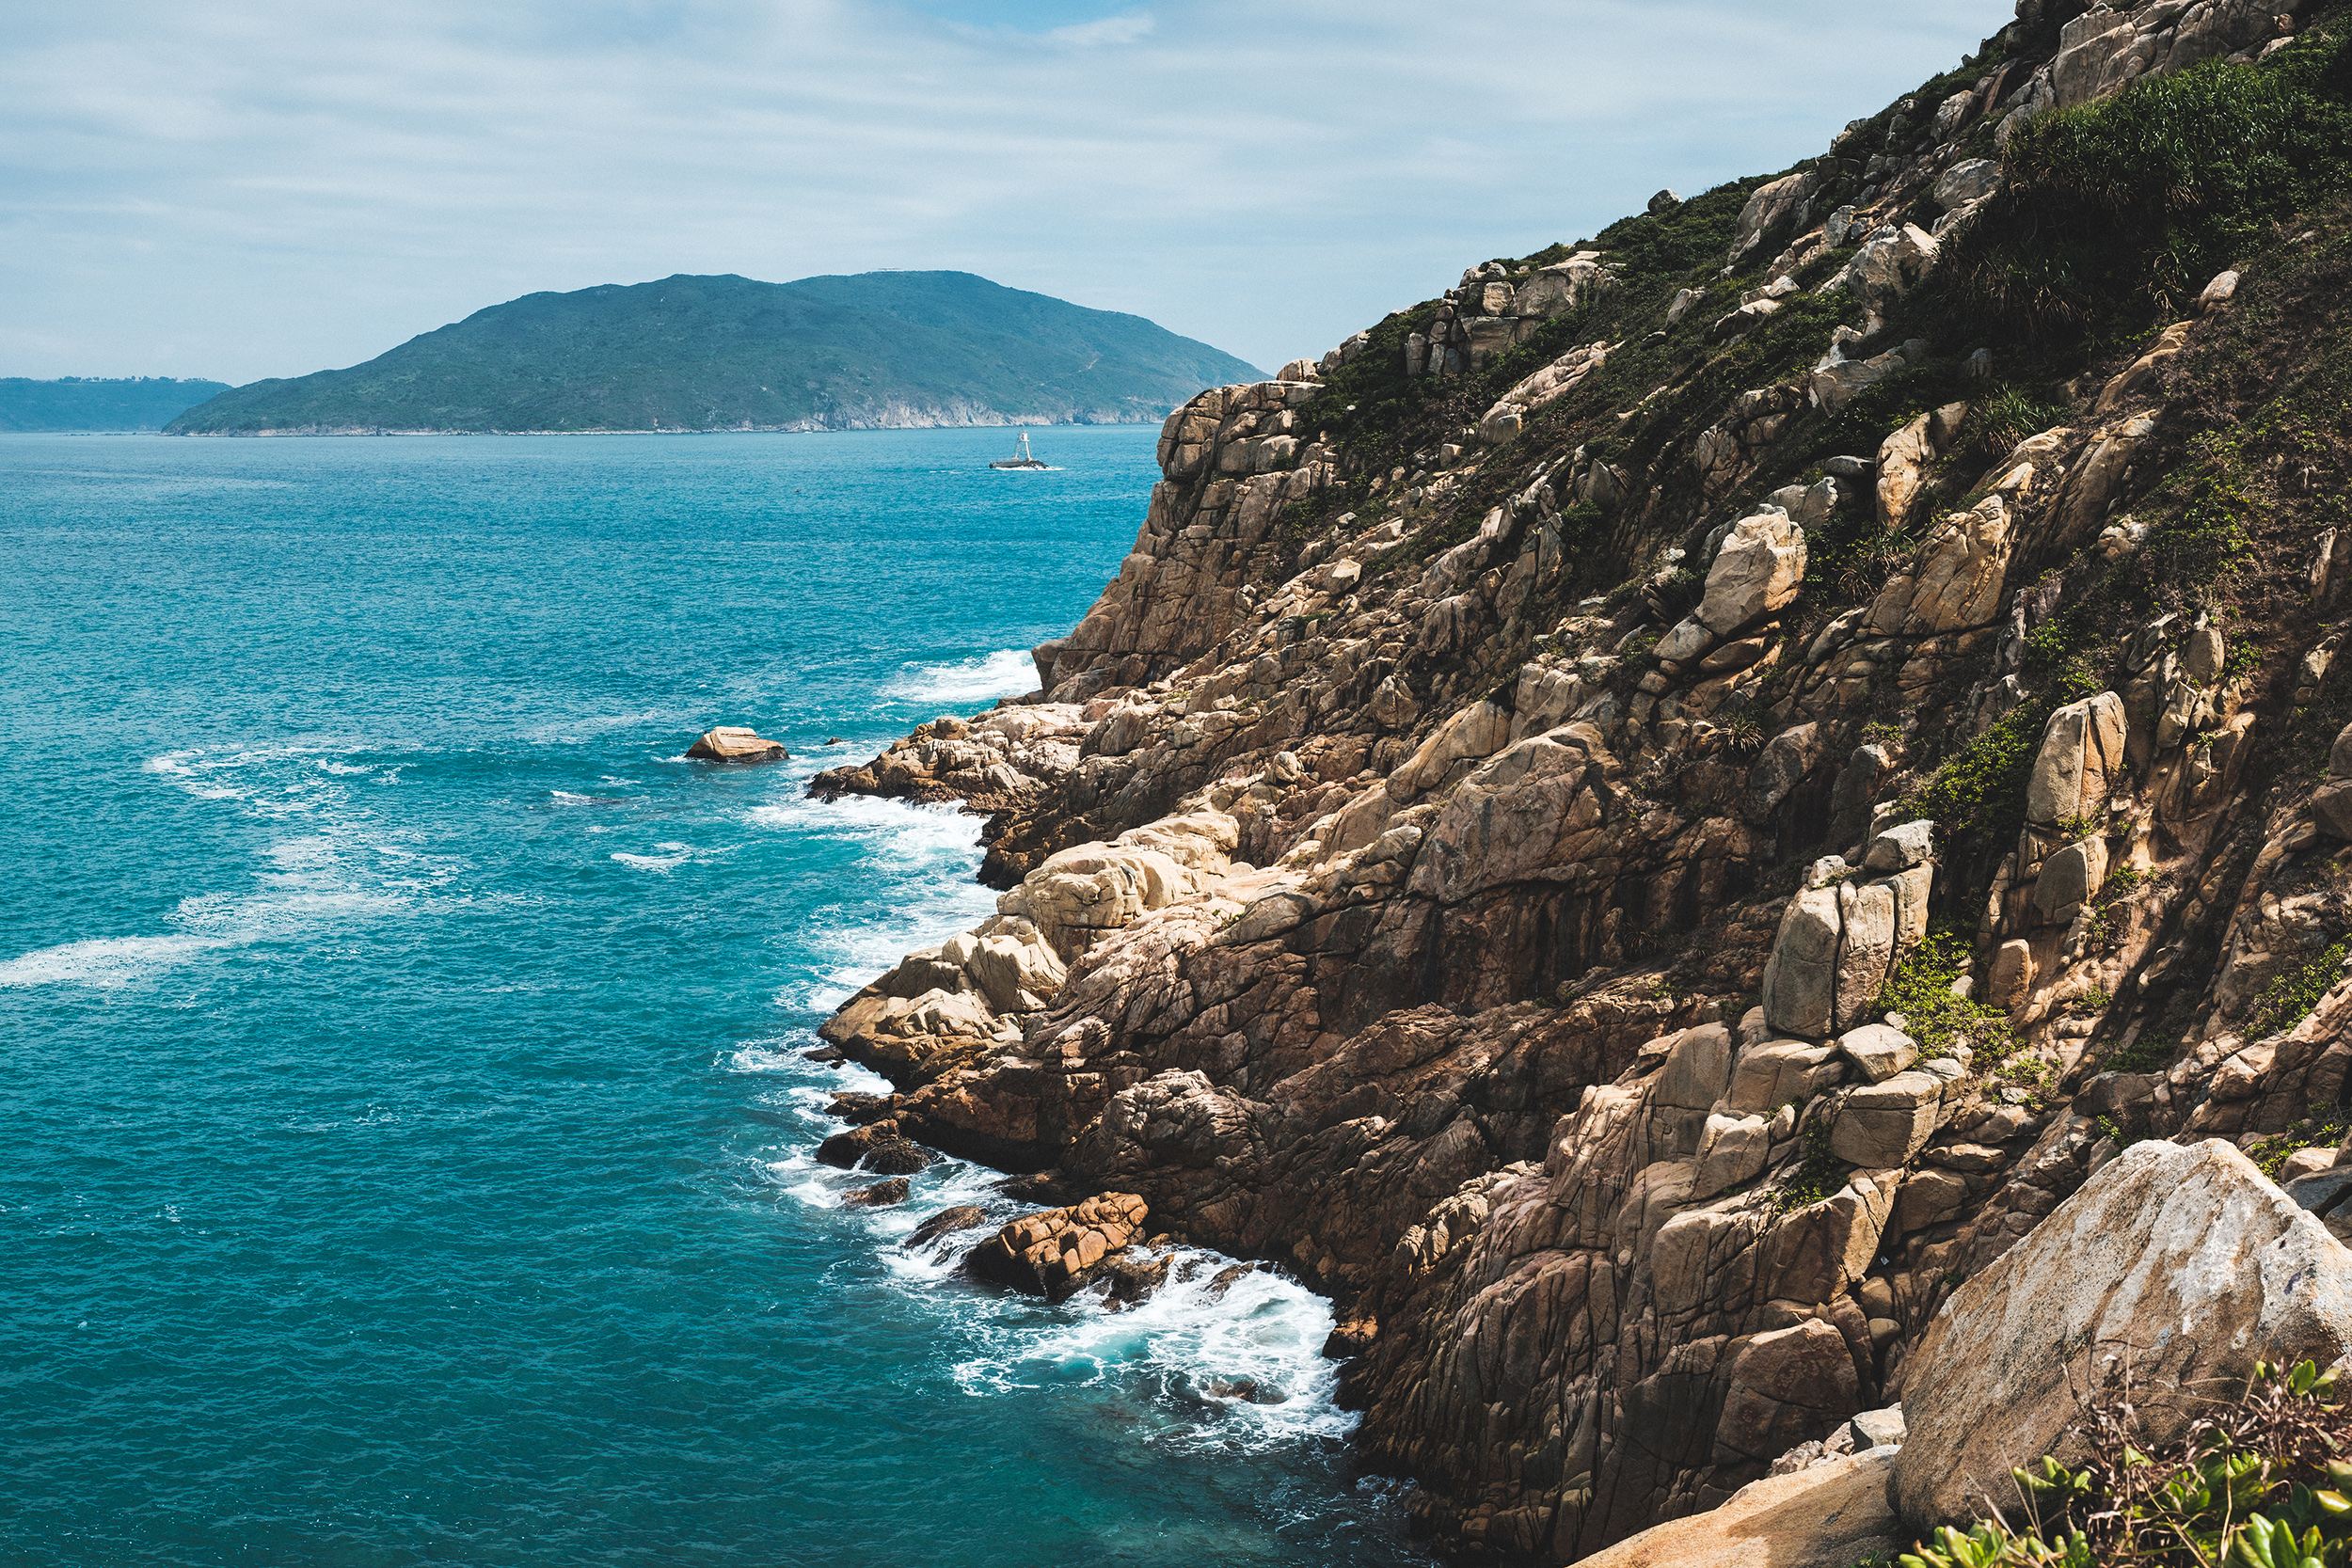 The rocky shore and ocean at Prospect Point in Shek O, Hong Kong